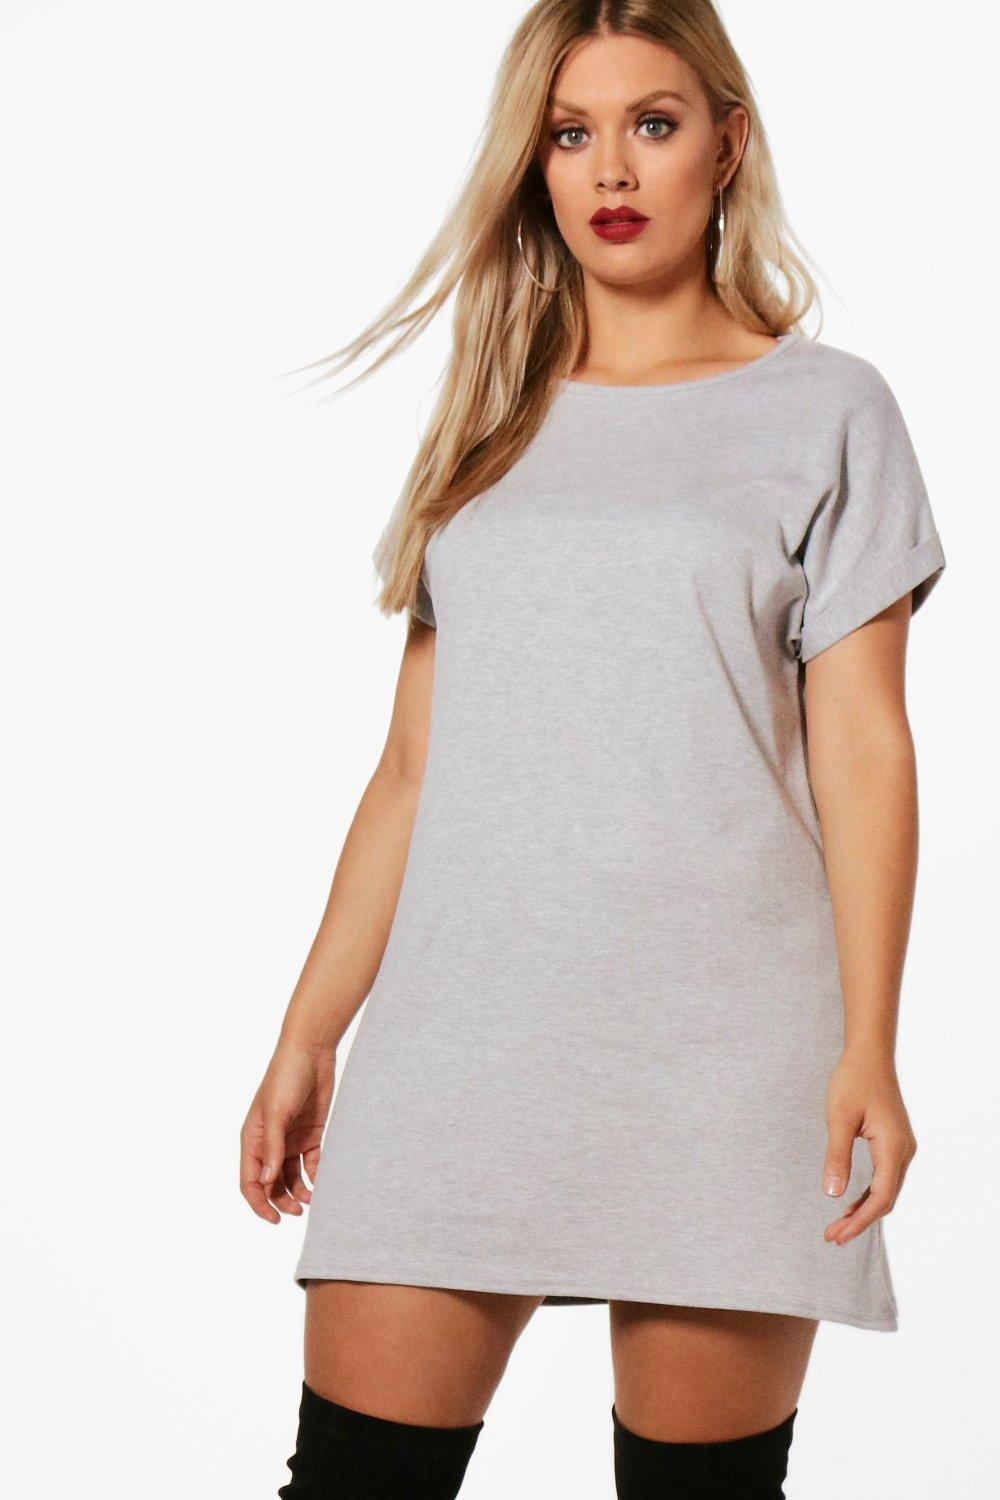 d45a2404e7 NEW Boohoo Womens Plus Oversized Roll Up T-Shirt Dress in Cotton